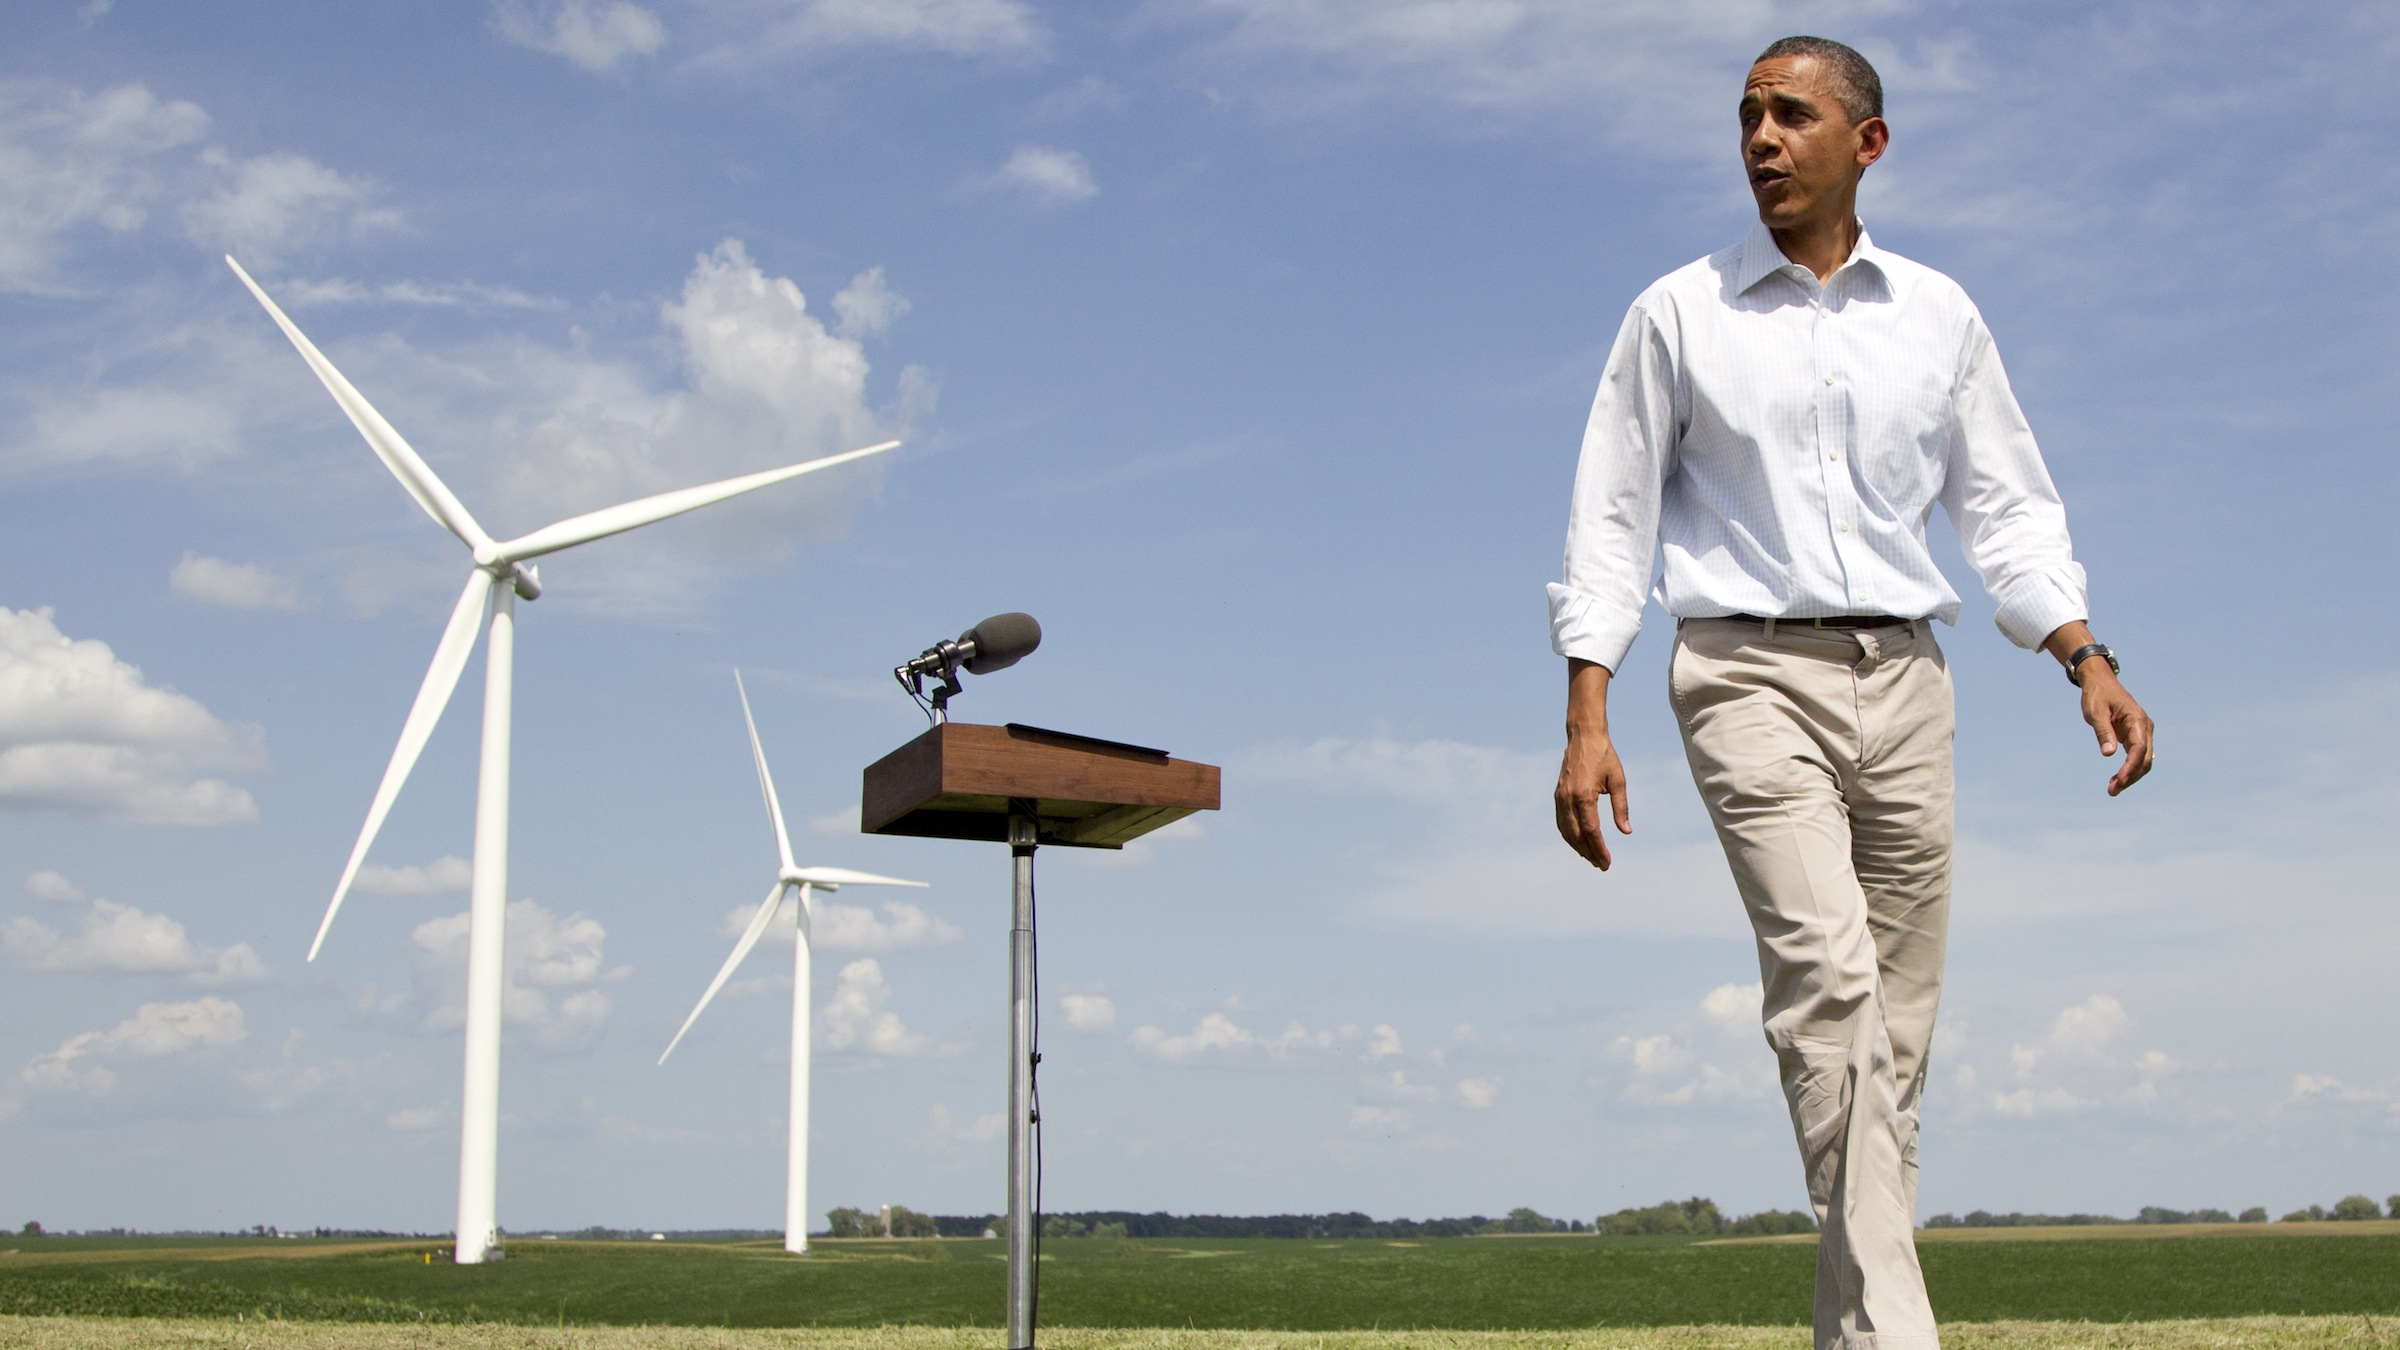 Barack Obama with wind turbines in the background